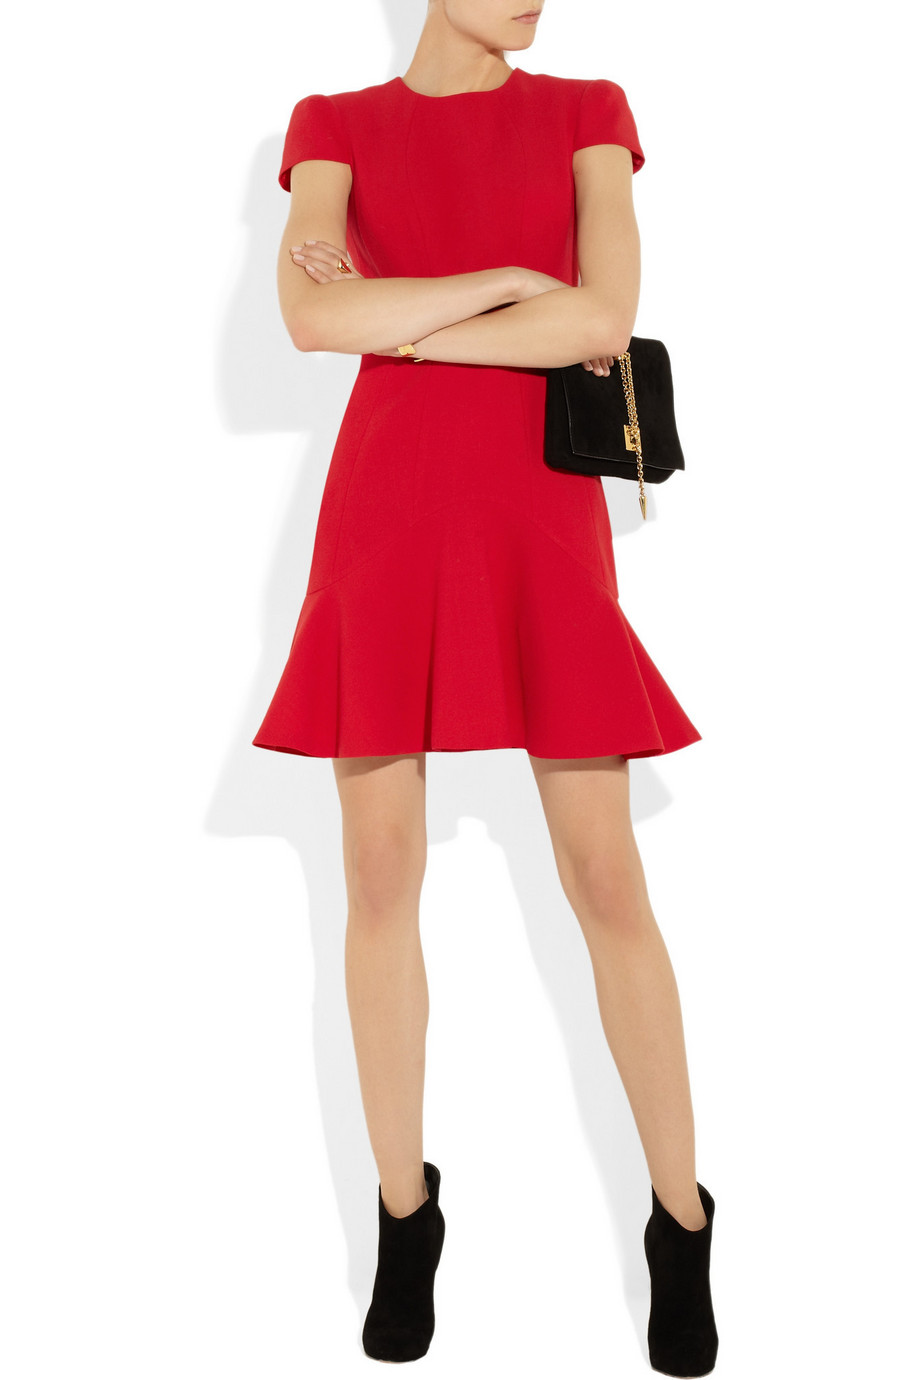 Alexander McQueen Wool-crepe Red Dress | Day to Night Dresses for Fall